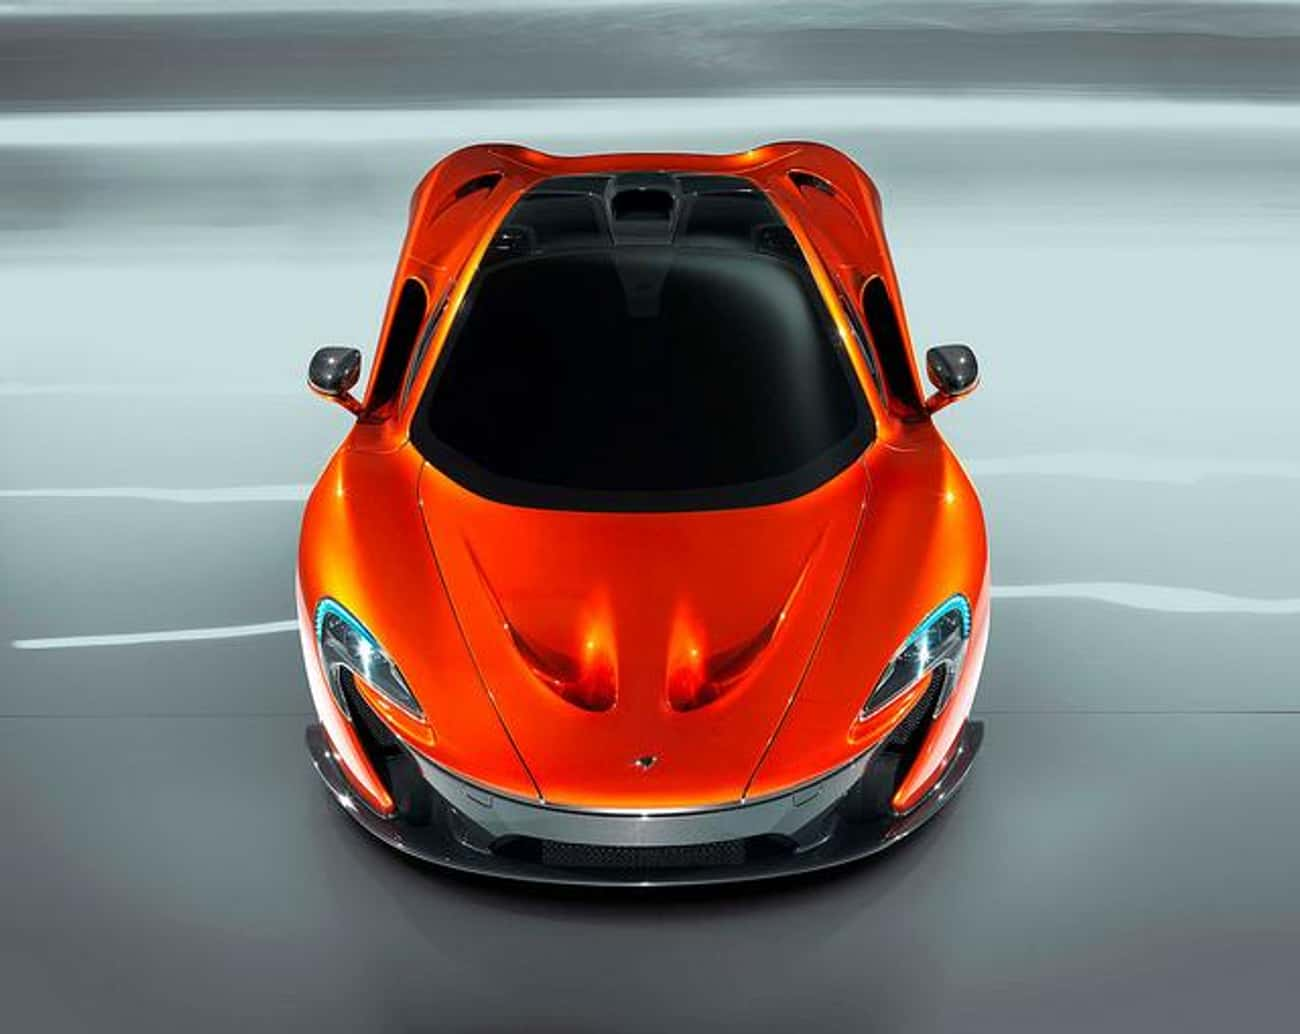 Mclaren P1 is listed (or ranked) 1 on the list The Coolest Cars In The World